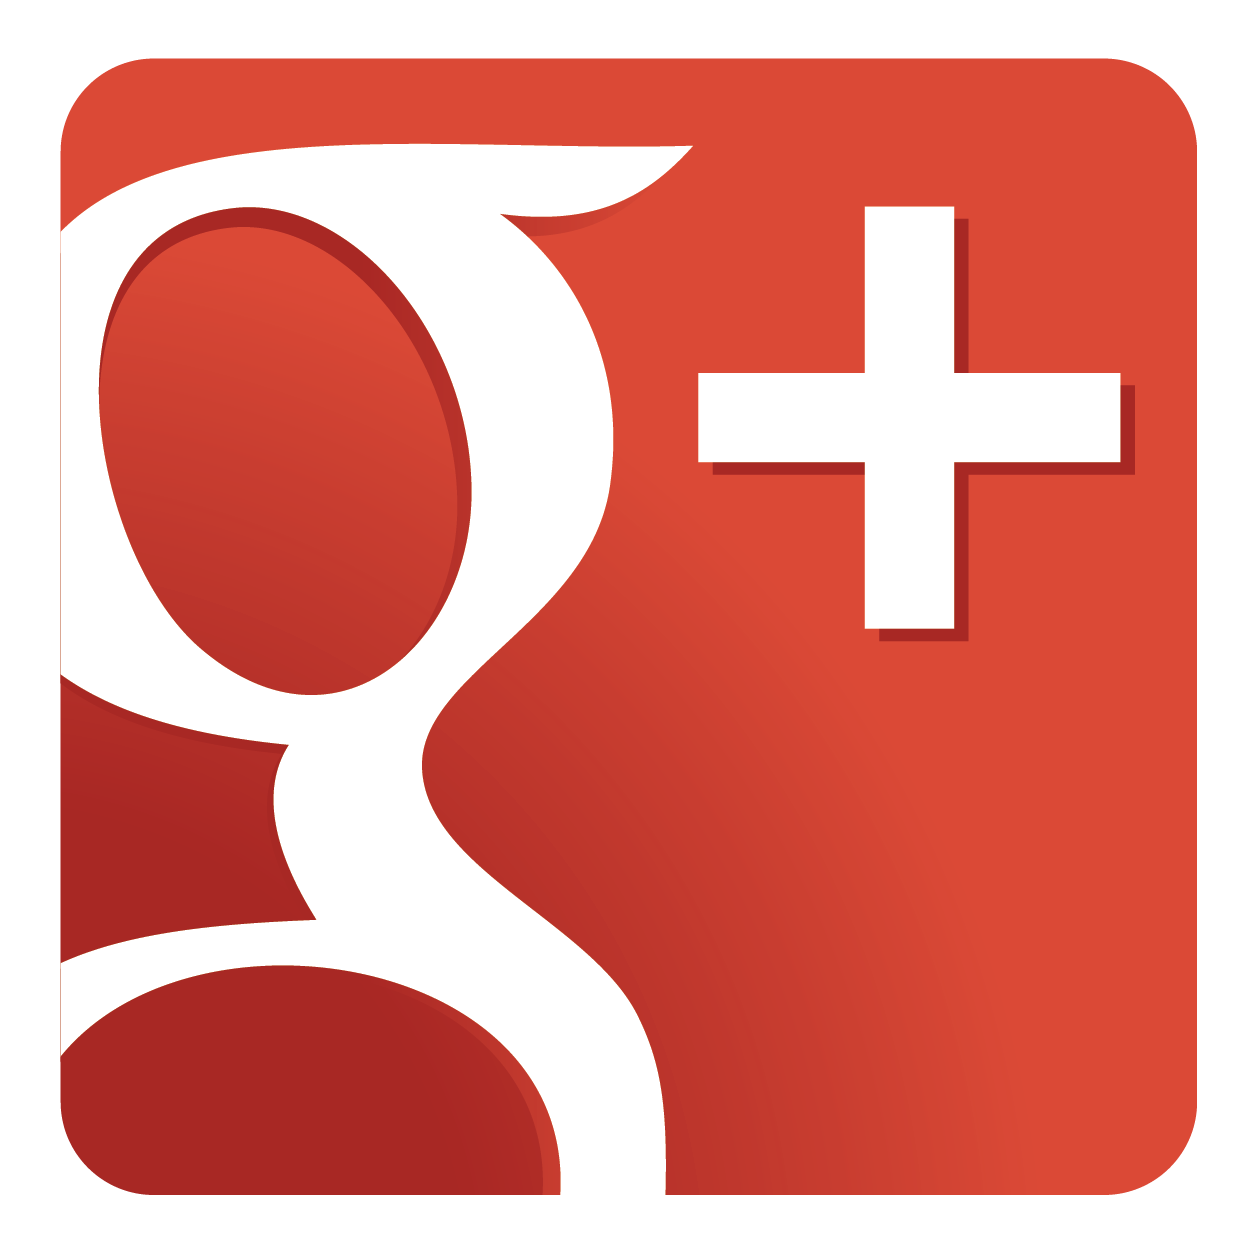 Official google plus logo png